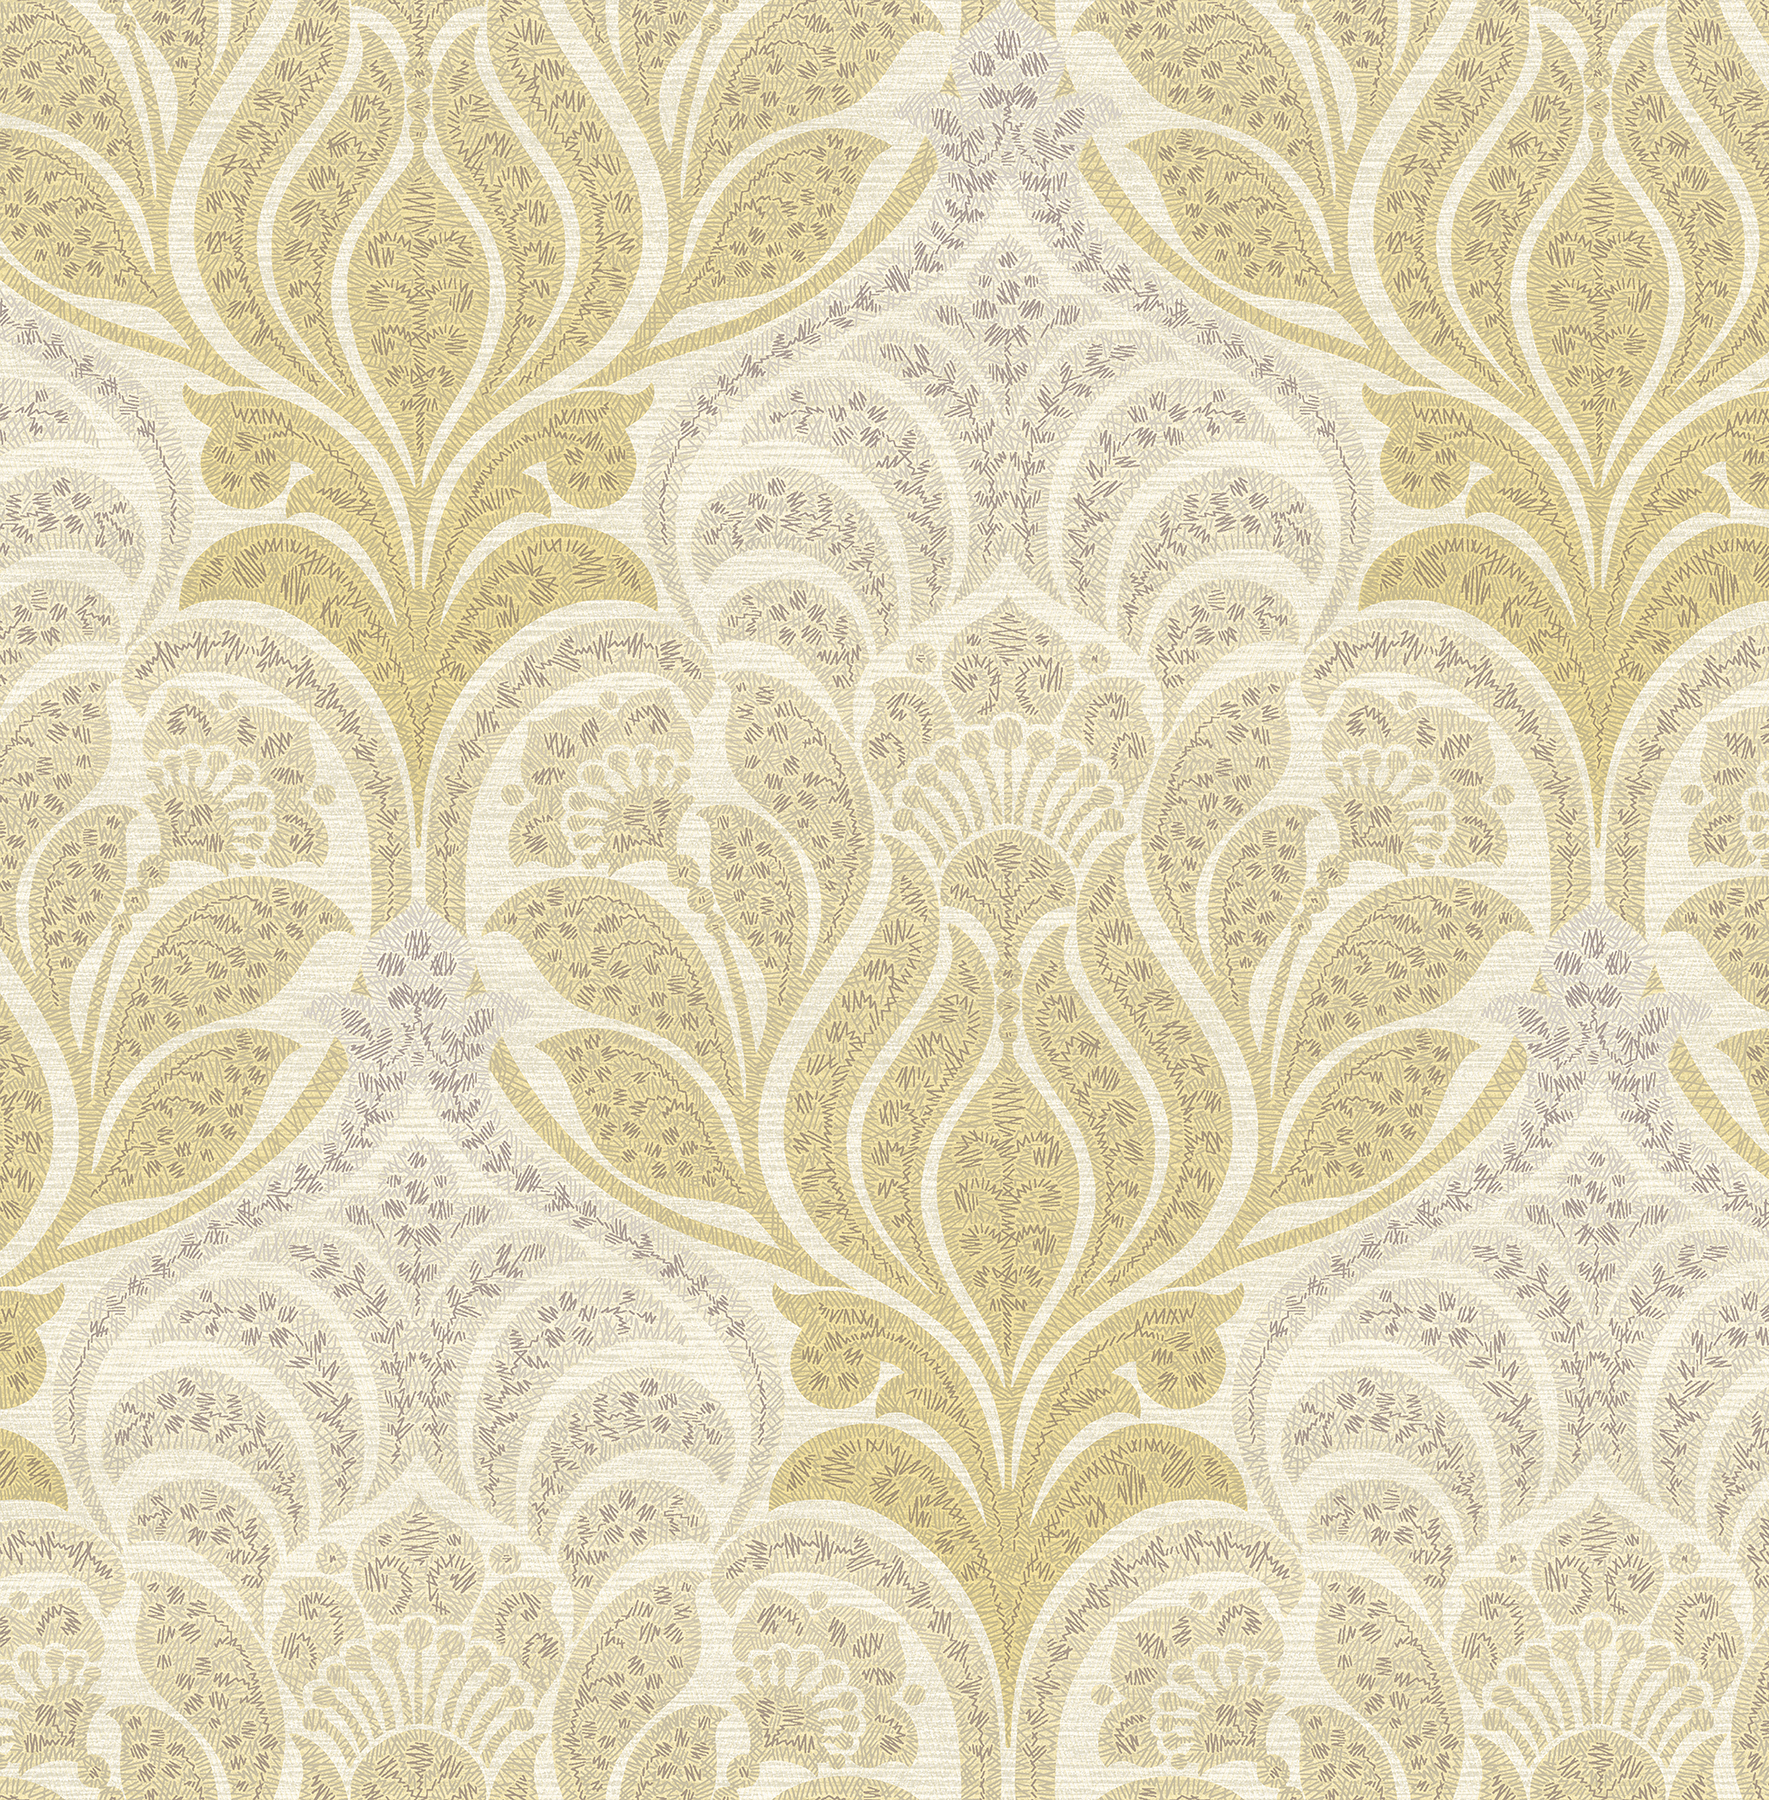 Kenneth James by Brewster 2671-22427 Twill Yellow Damask Wallpaper